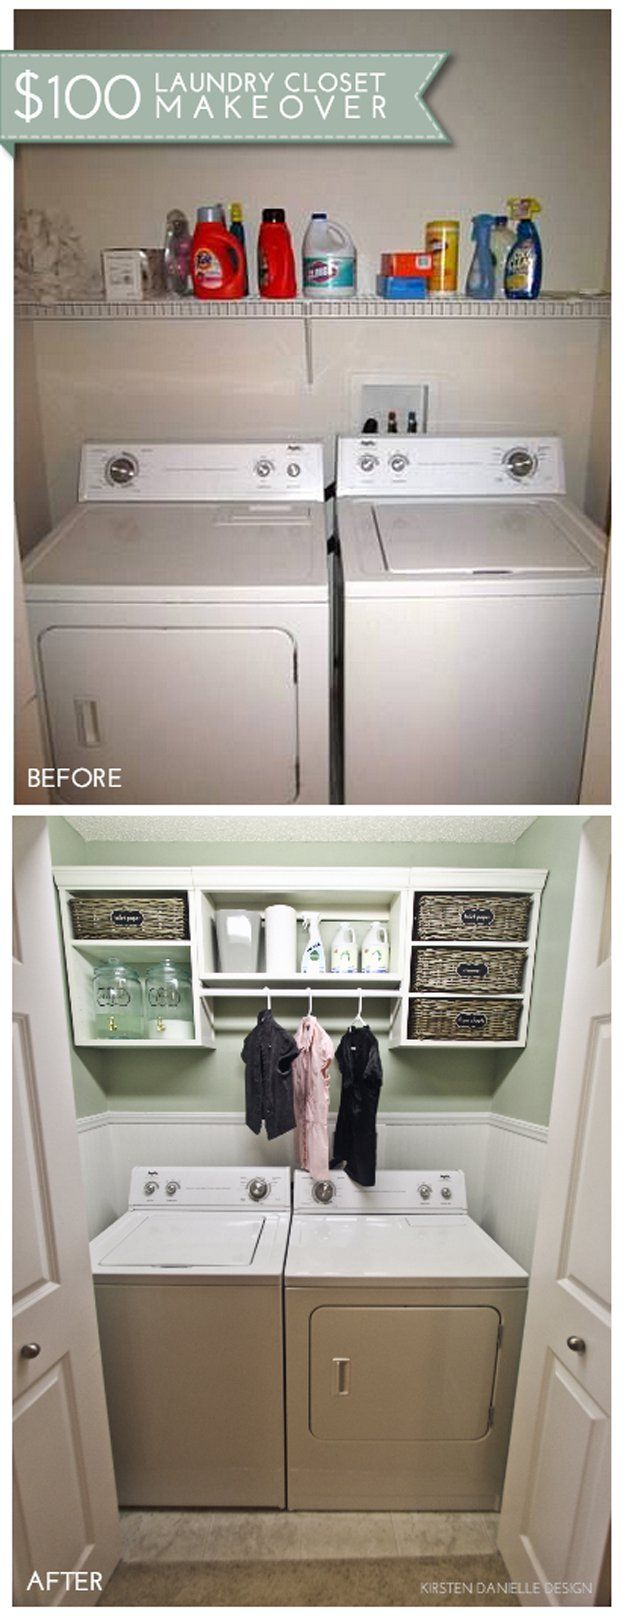 best images about laundry room on pinterest shelves hooks and